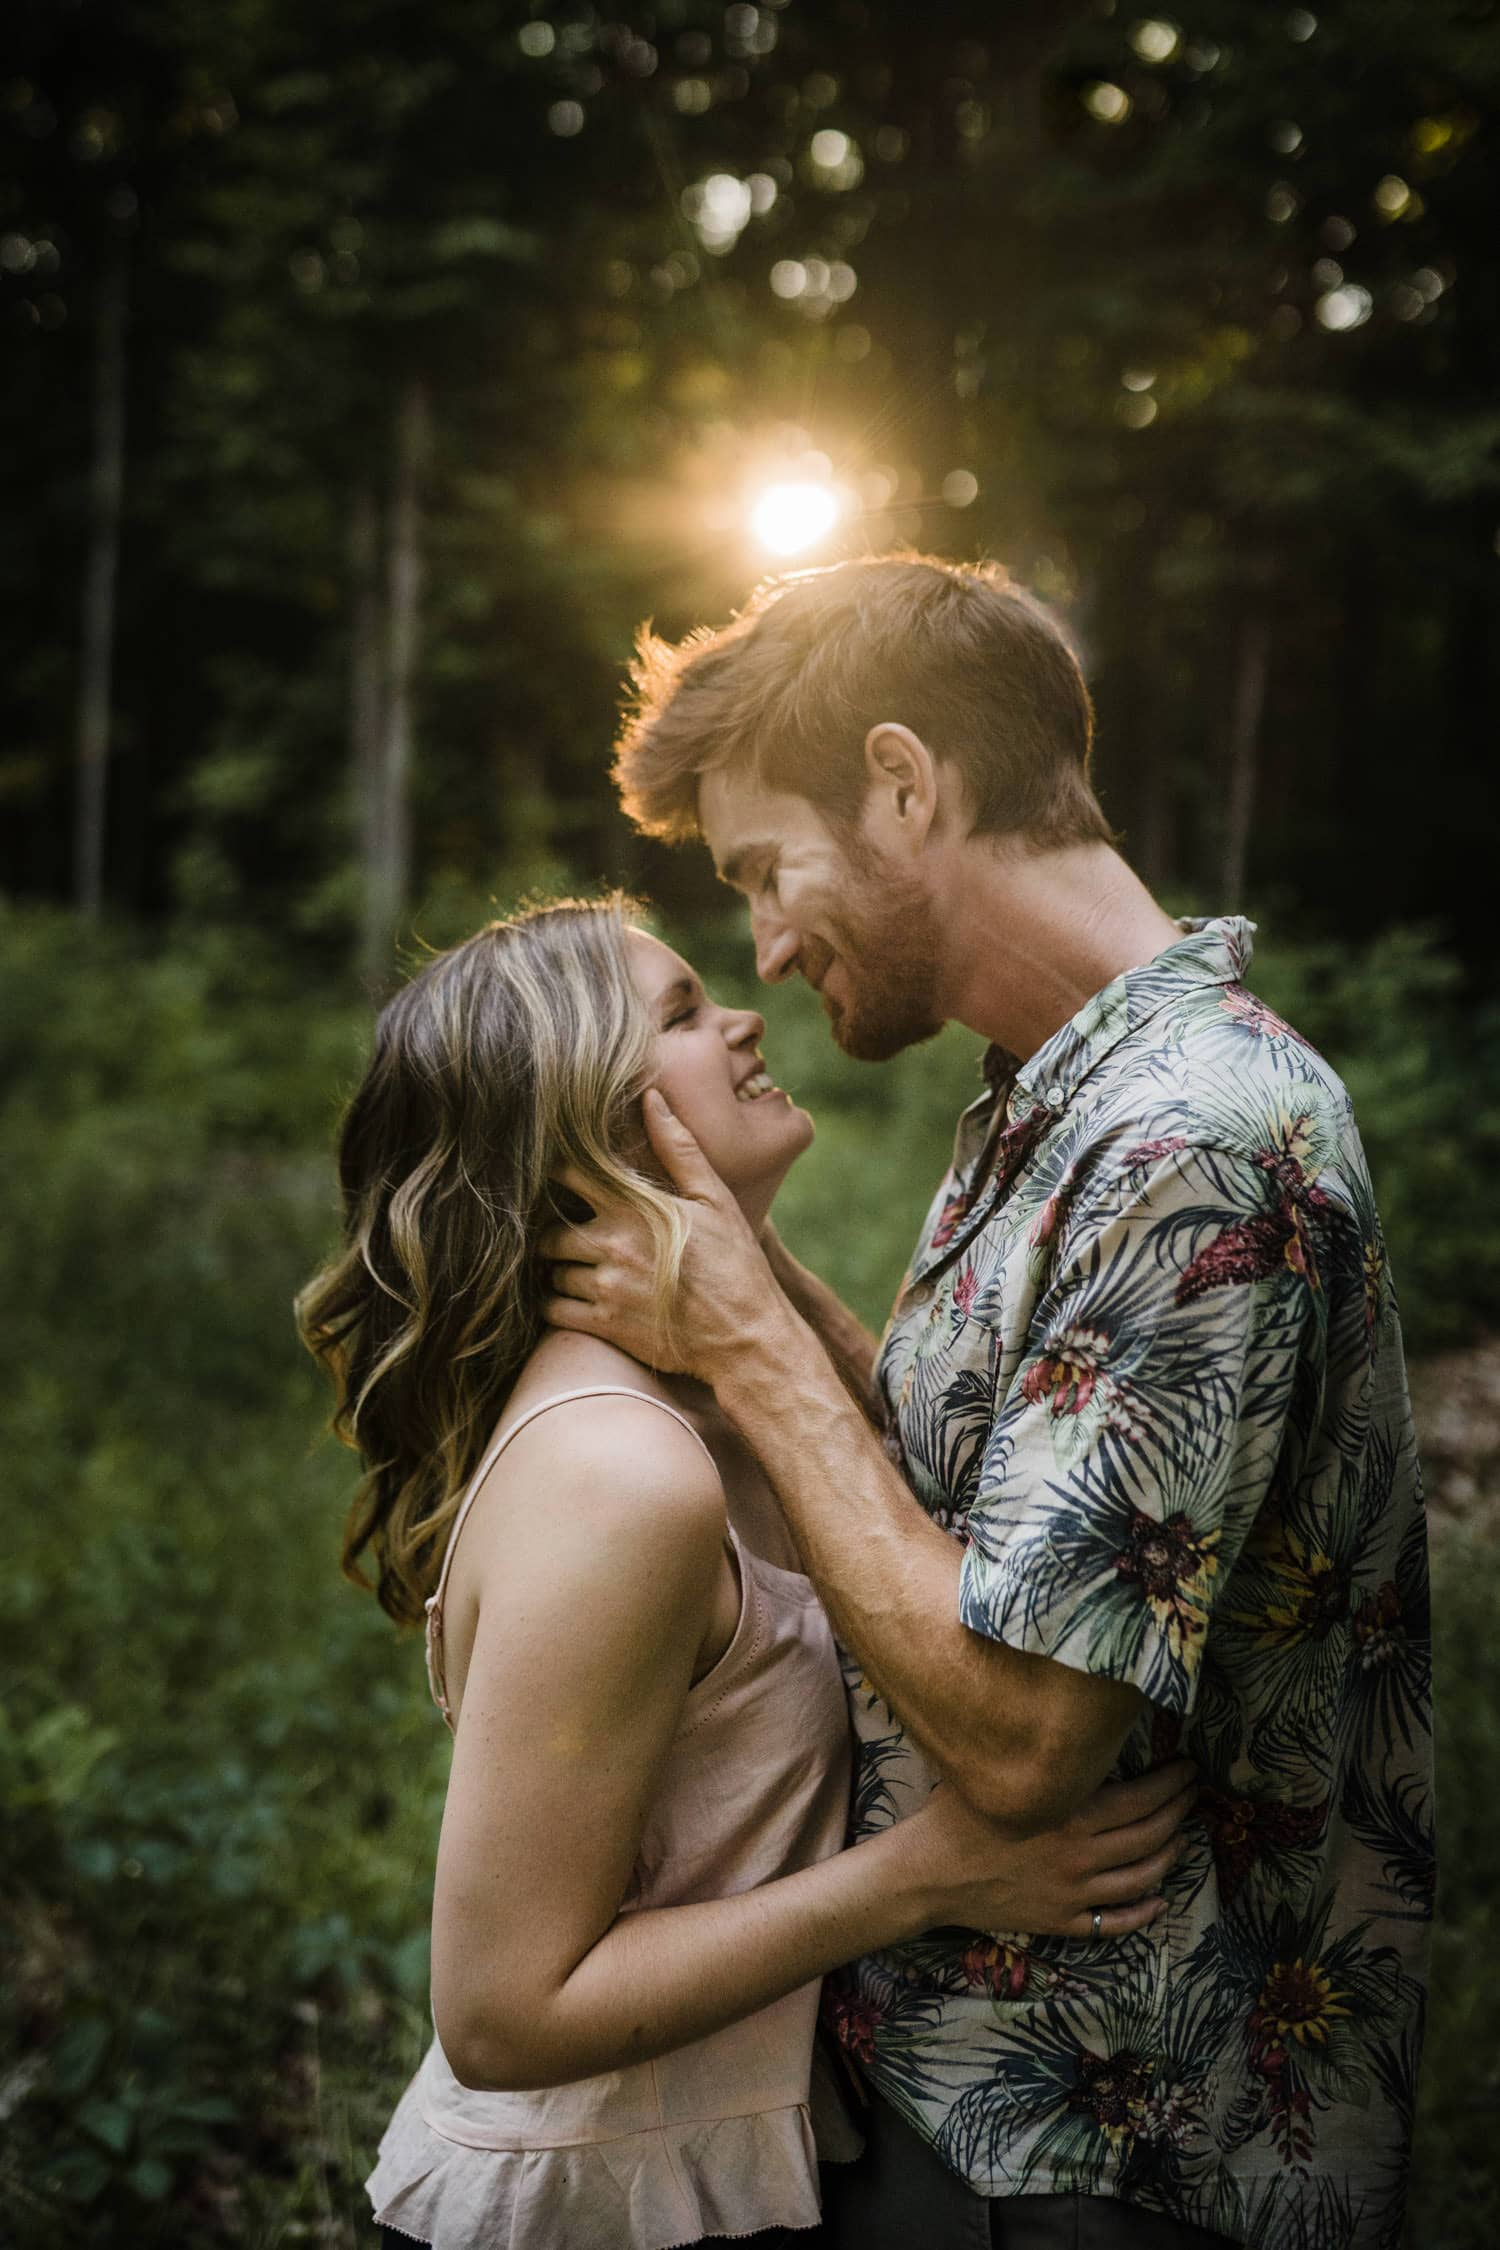 couple lean in for a kiss - ottawa engagement photos